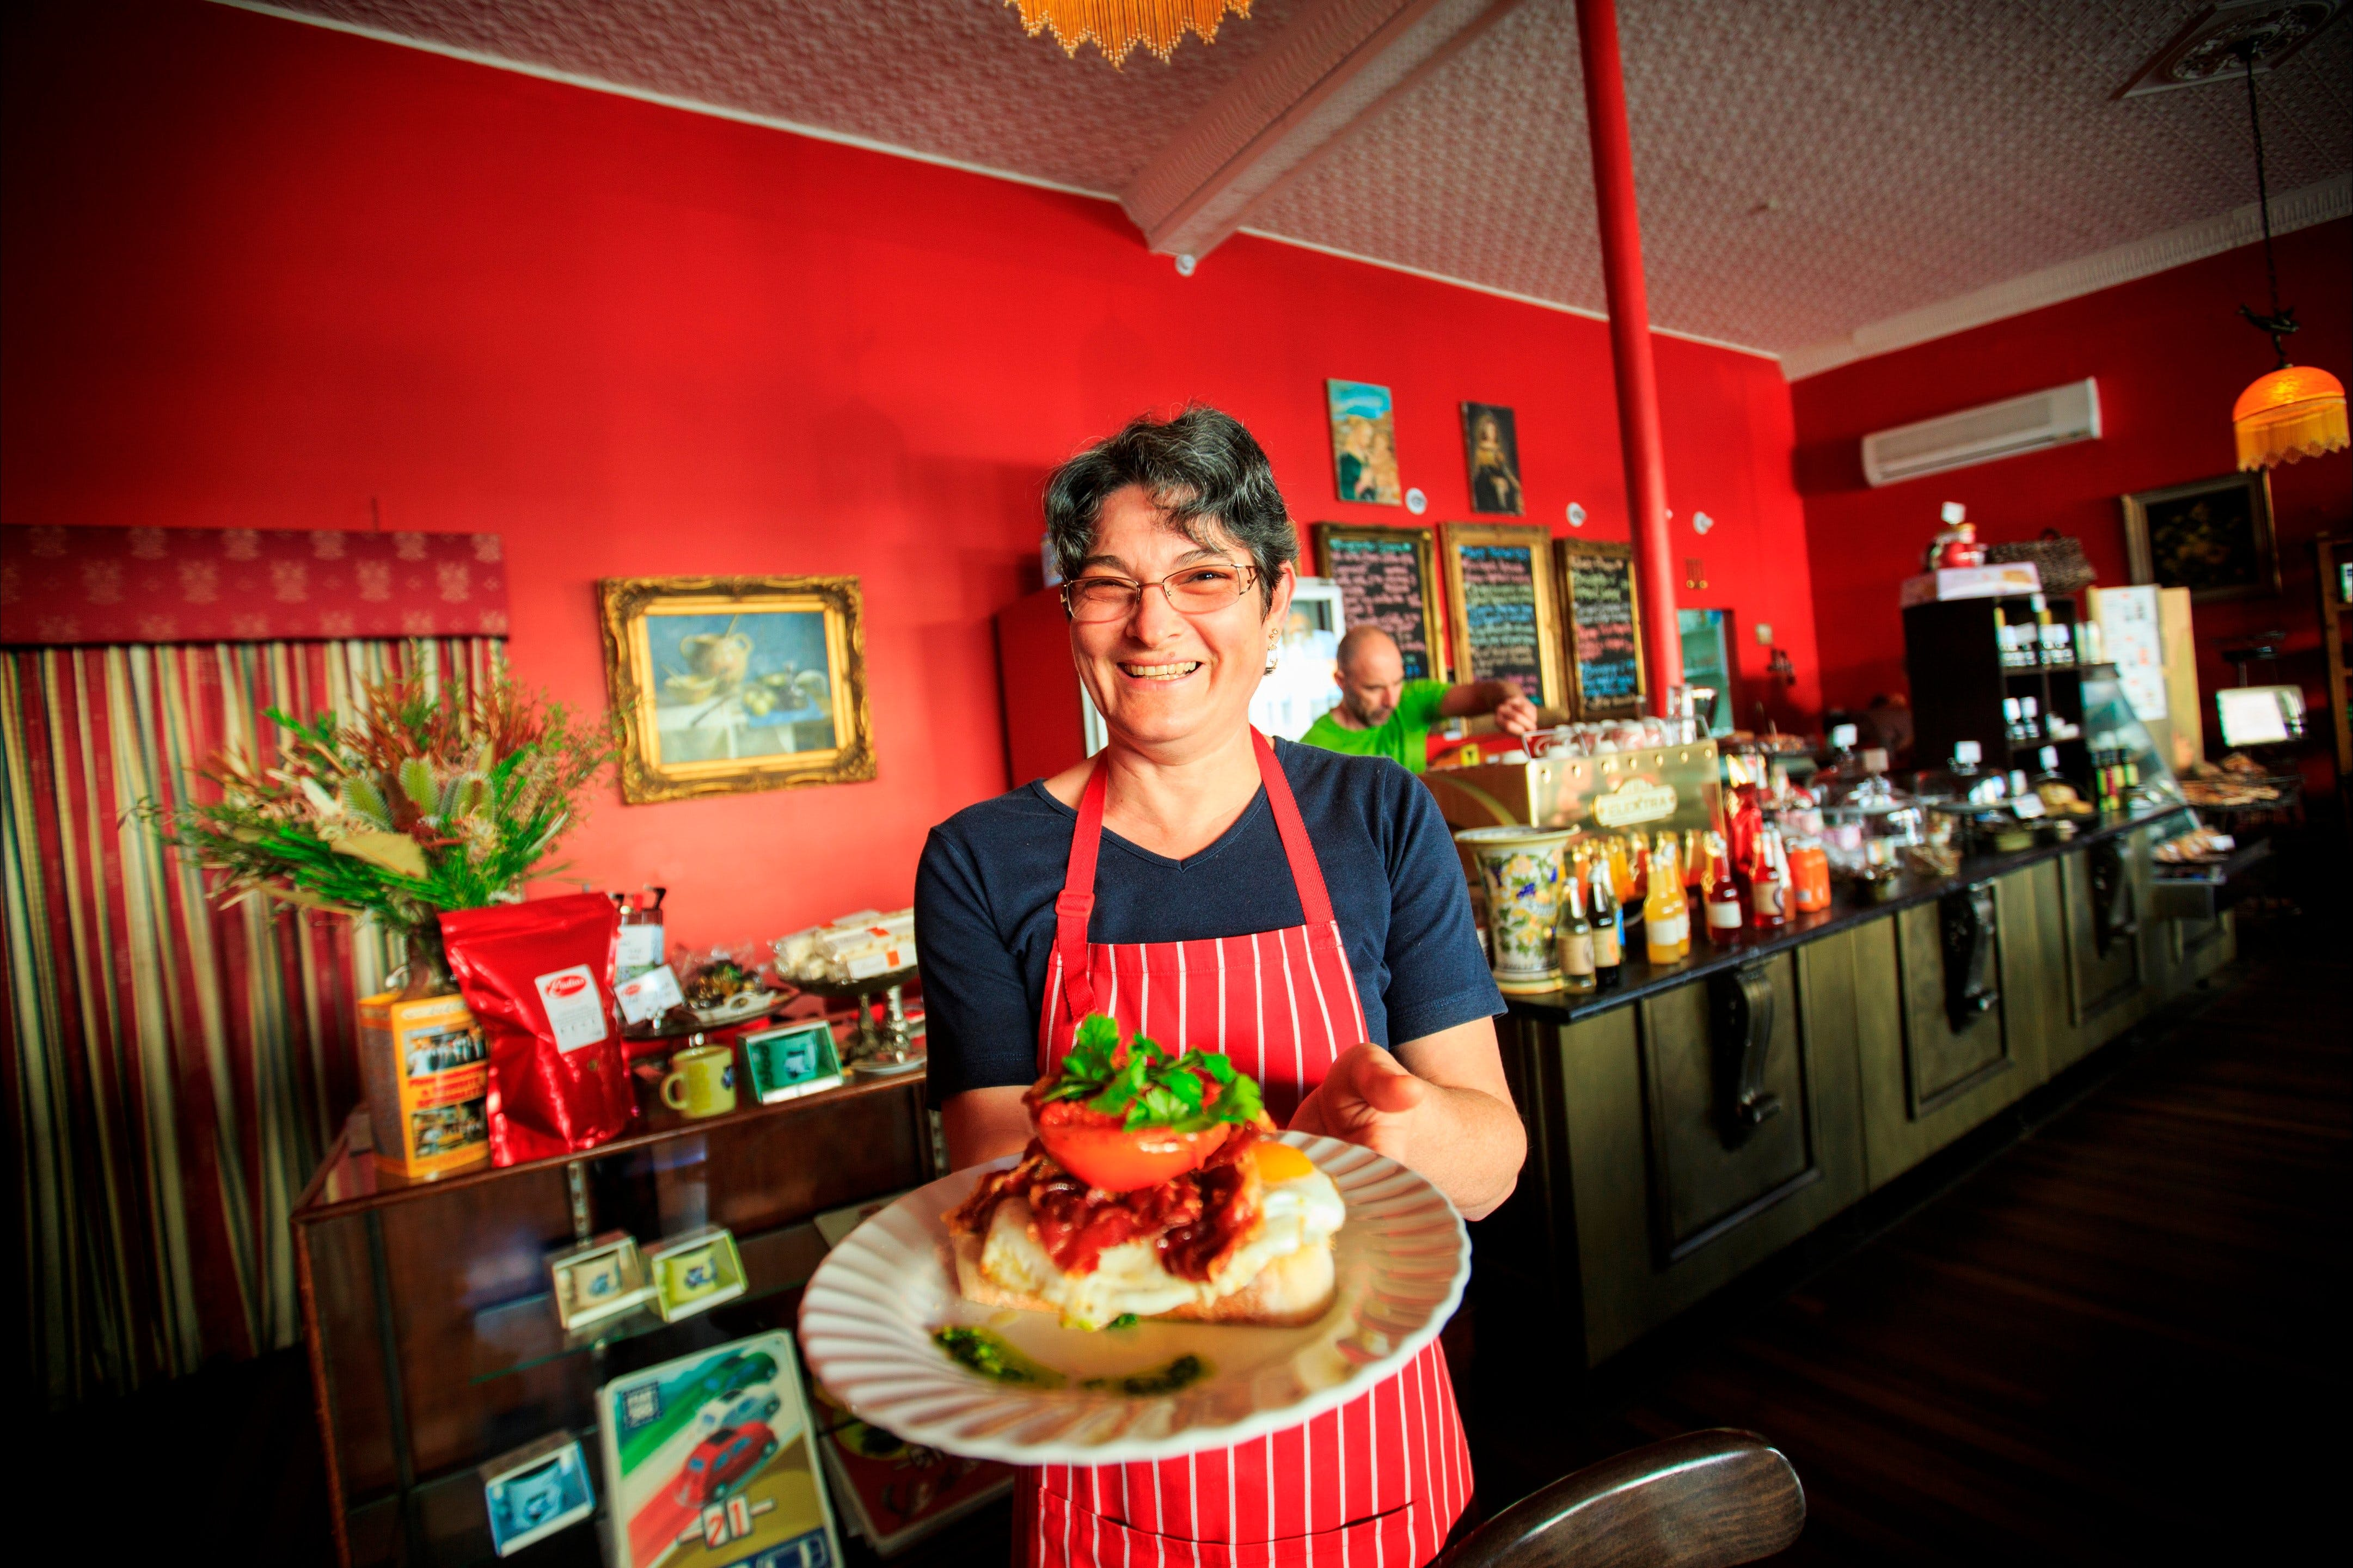 Gympie Region Food Trail - Attractions Melbourne